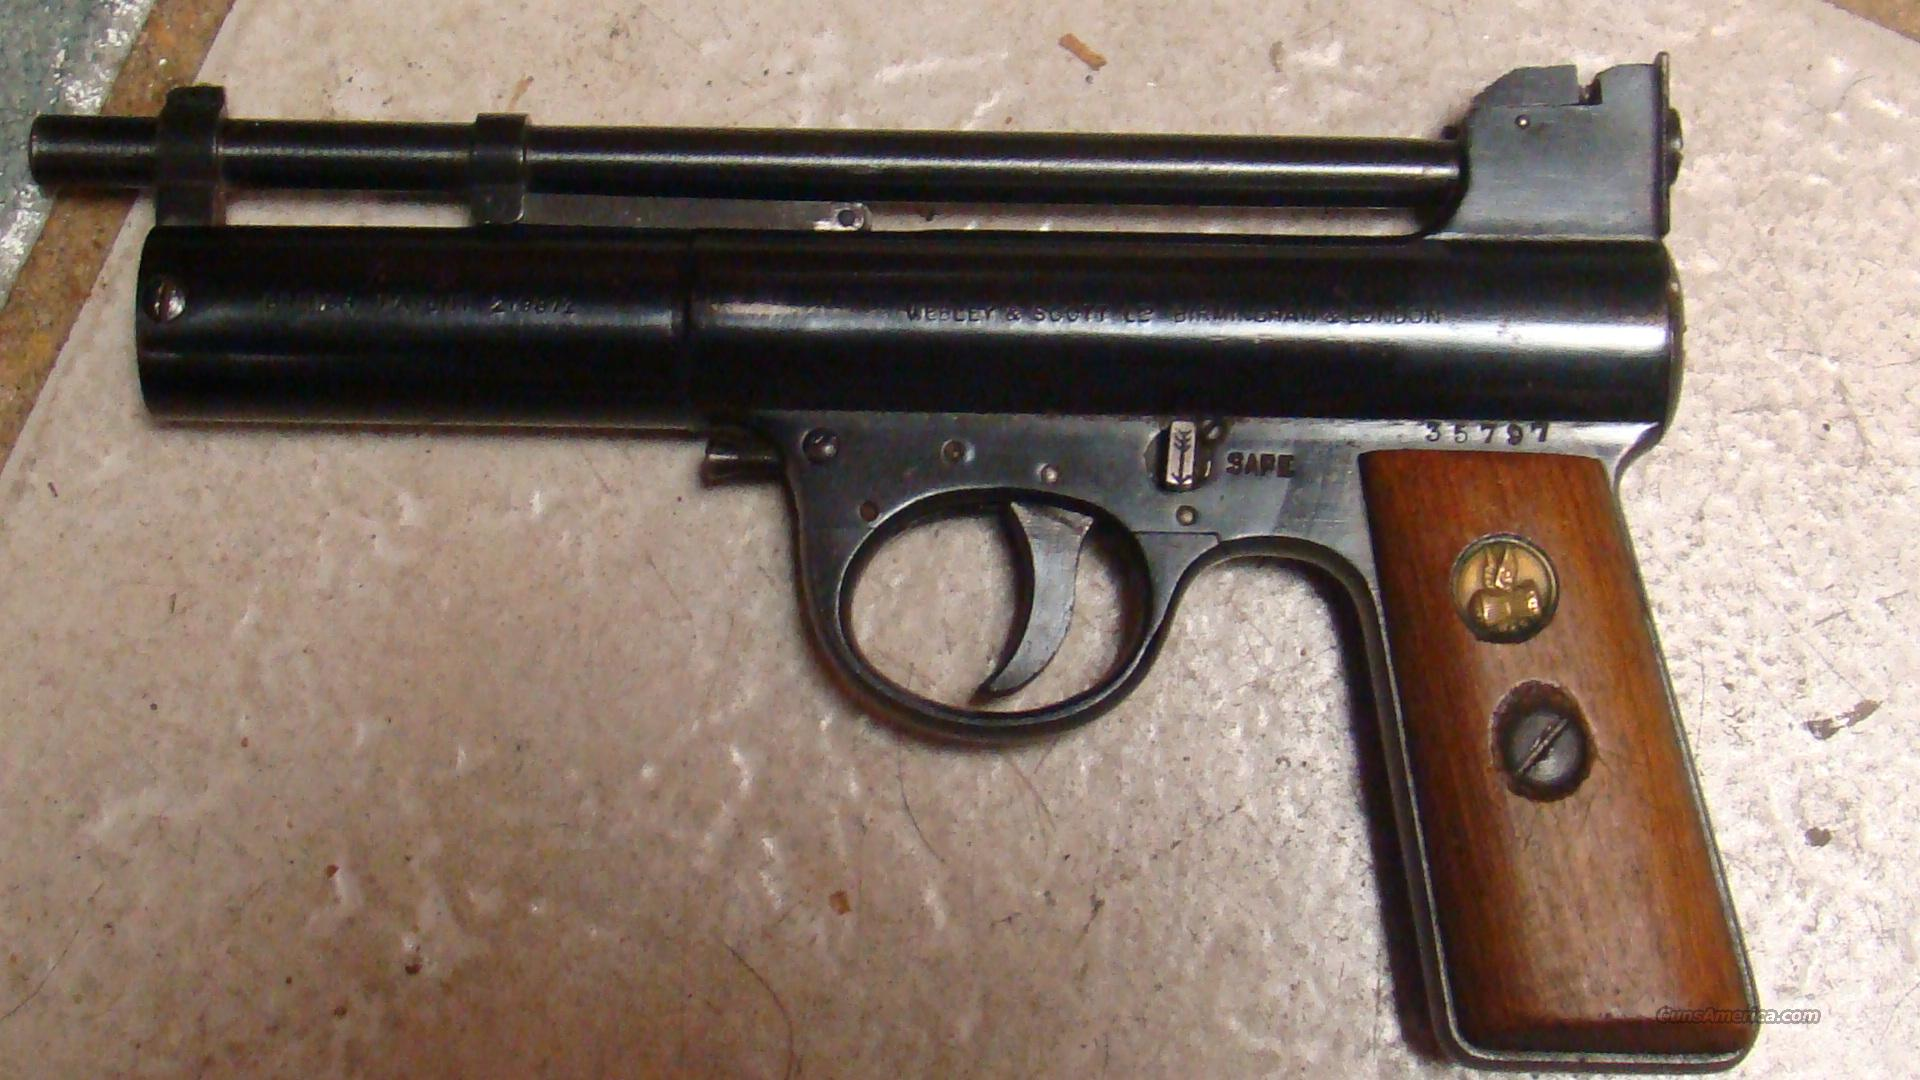 1928 WEBLEY MARK 1 TARGET EXL ++ COND WORKS MINT ALL ORIGL  Non-Guns > Air Rifles - Pistols > Vintage